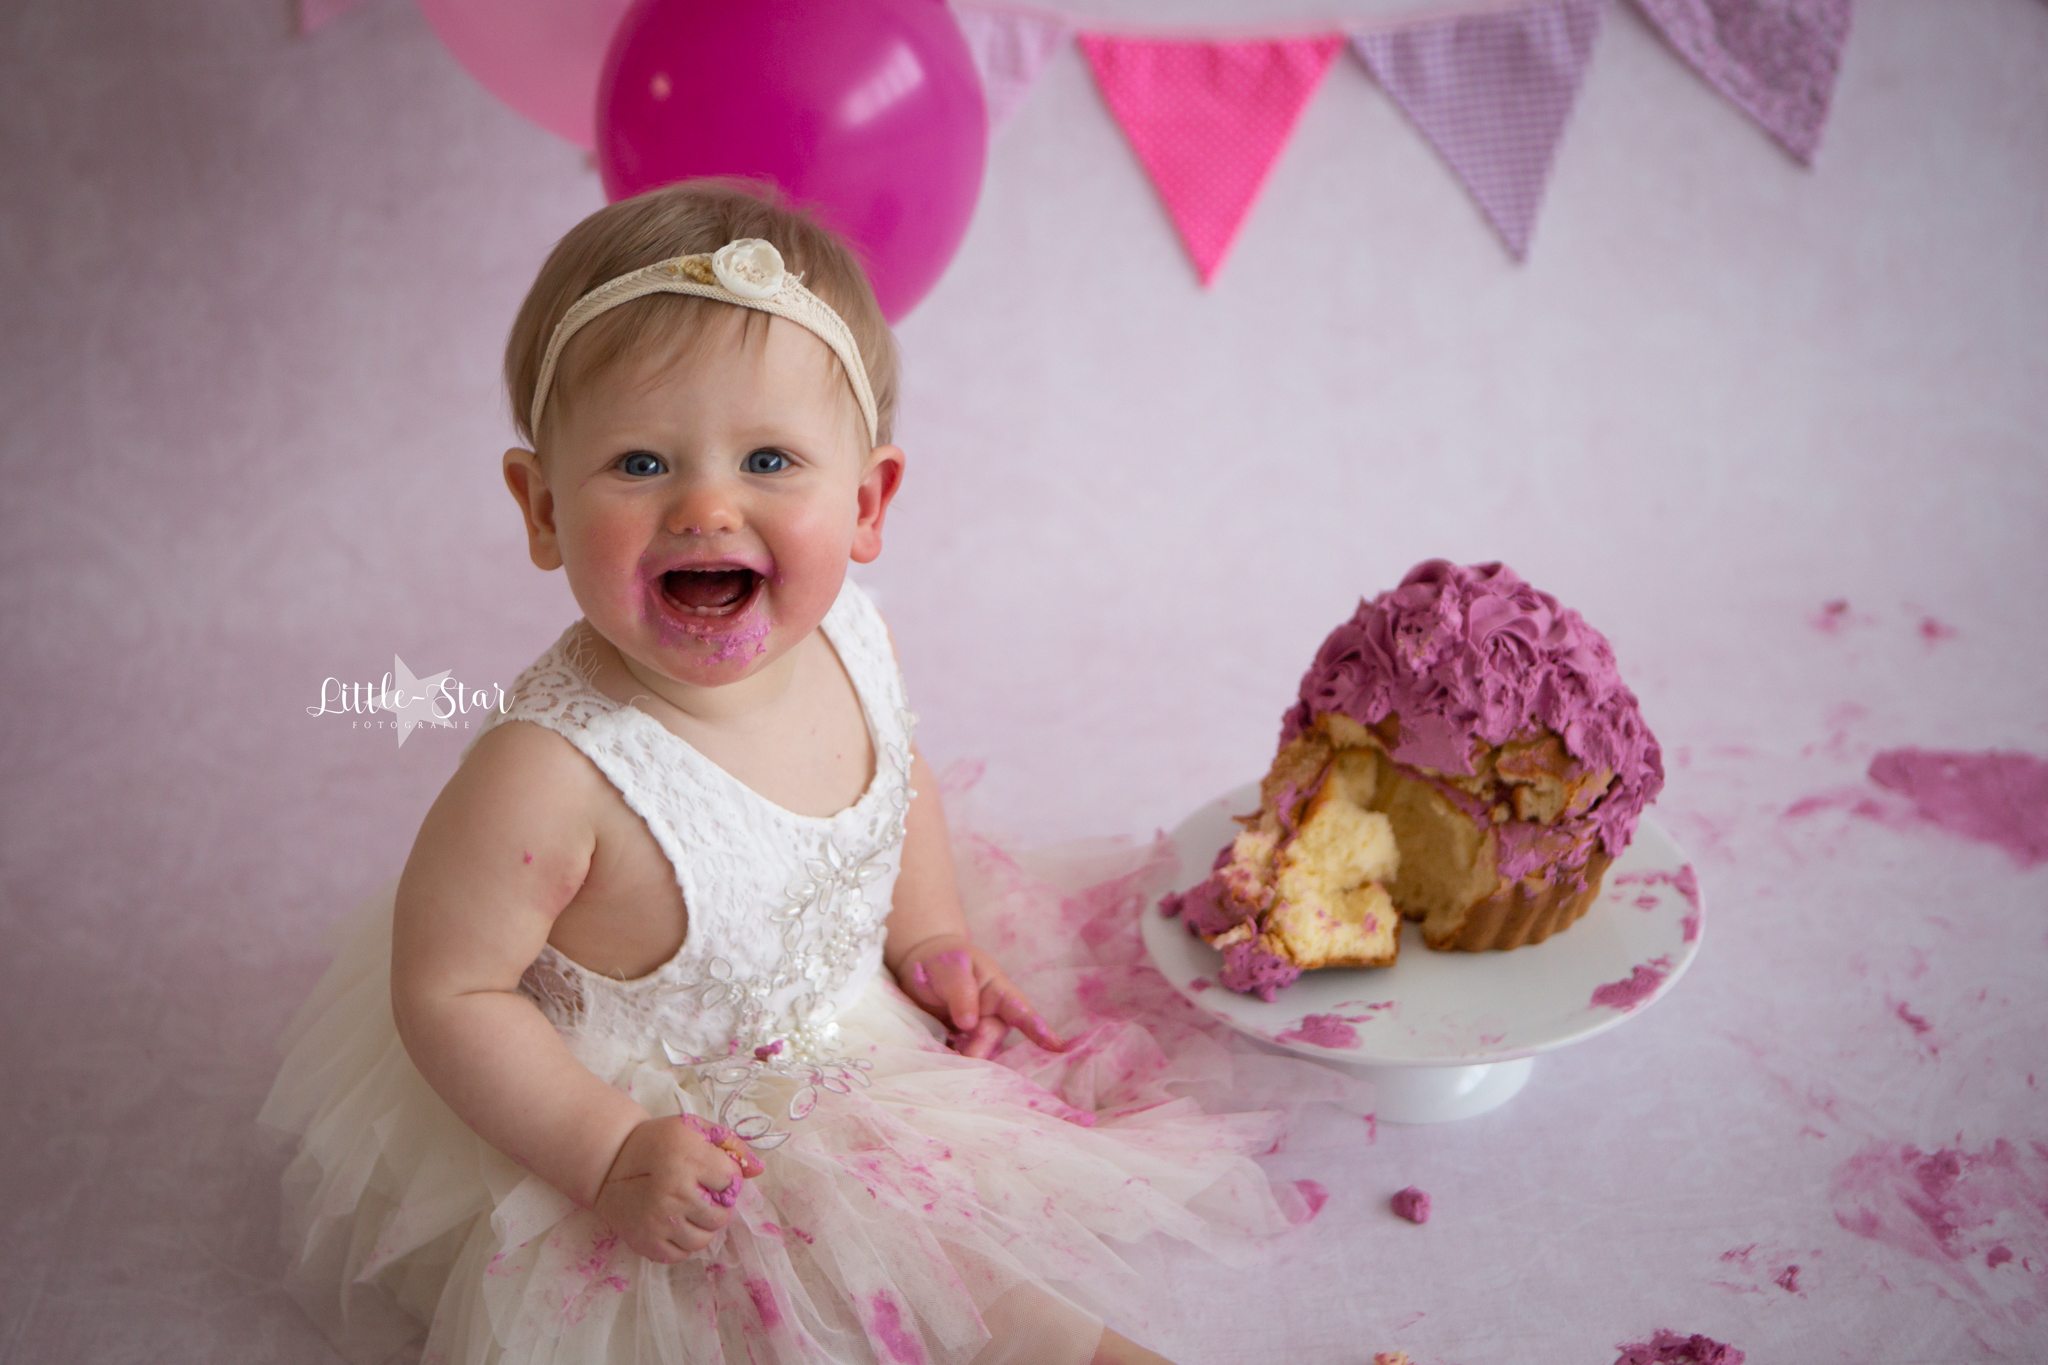 Cake smash fotoshoot Pip uit Zundert (1 of 1)